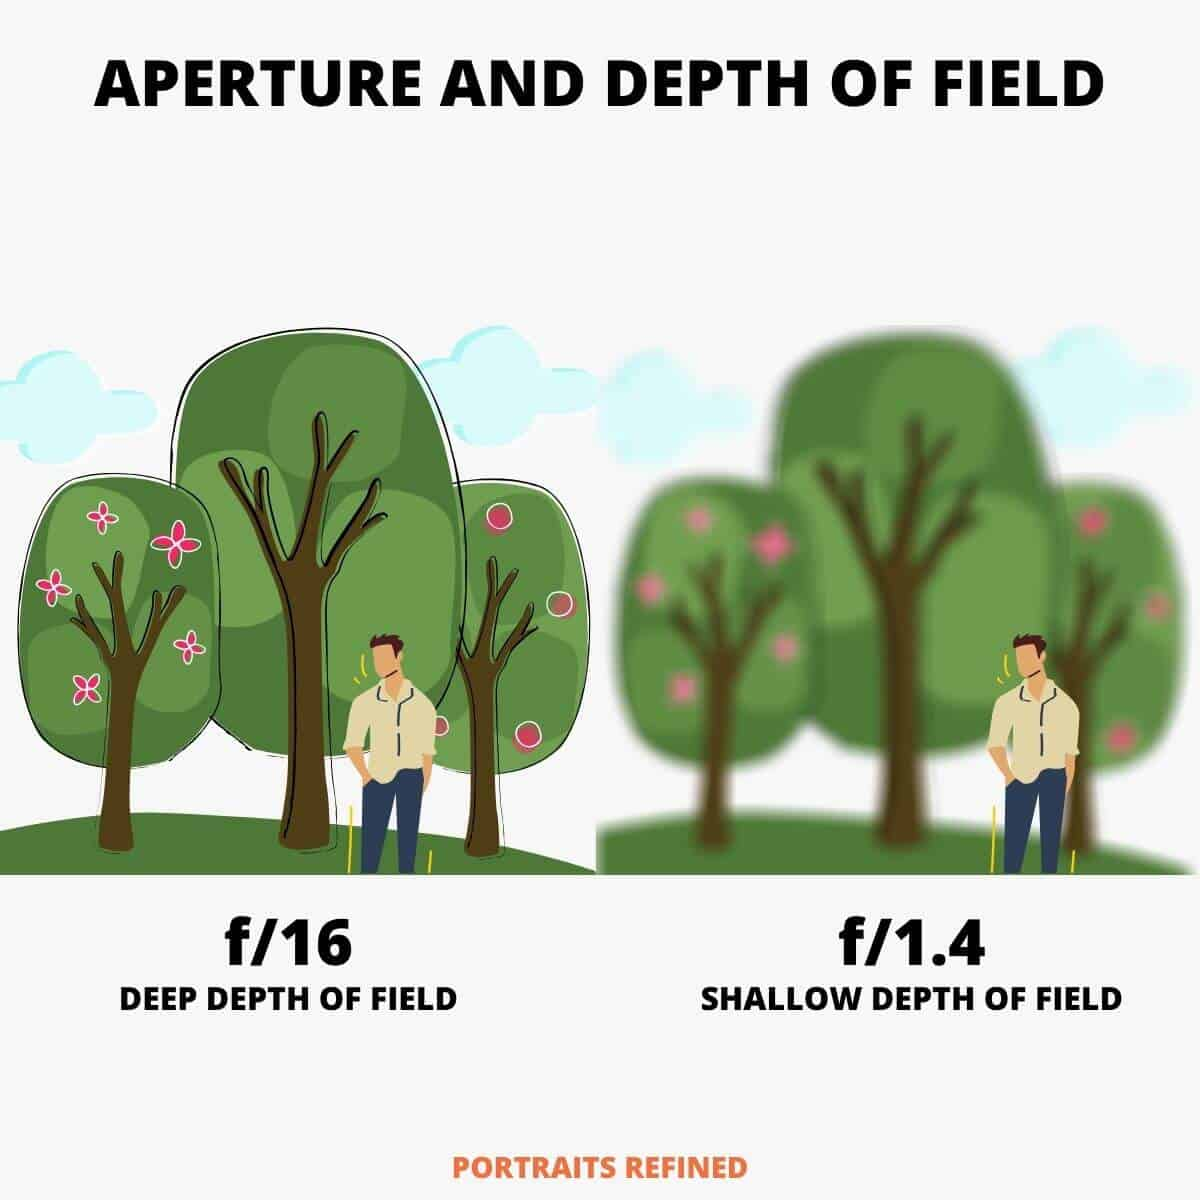 Comparison of a deep depth of field versus a shallow depth of field.